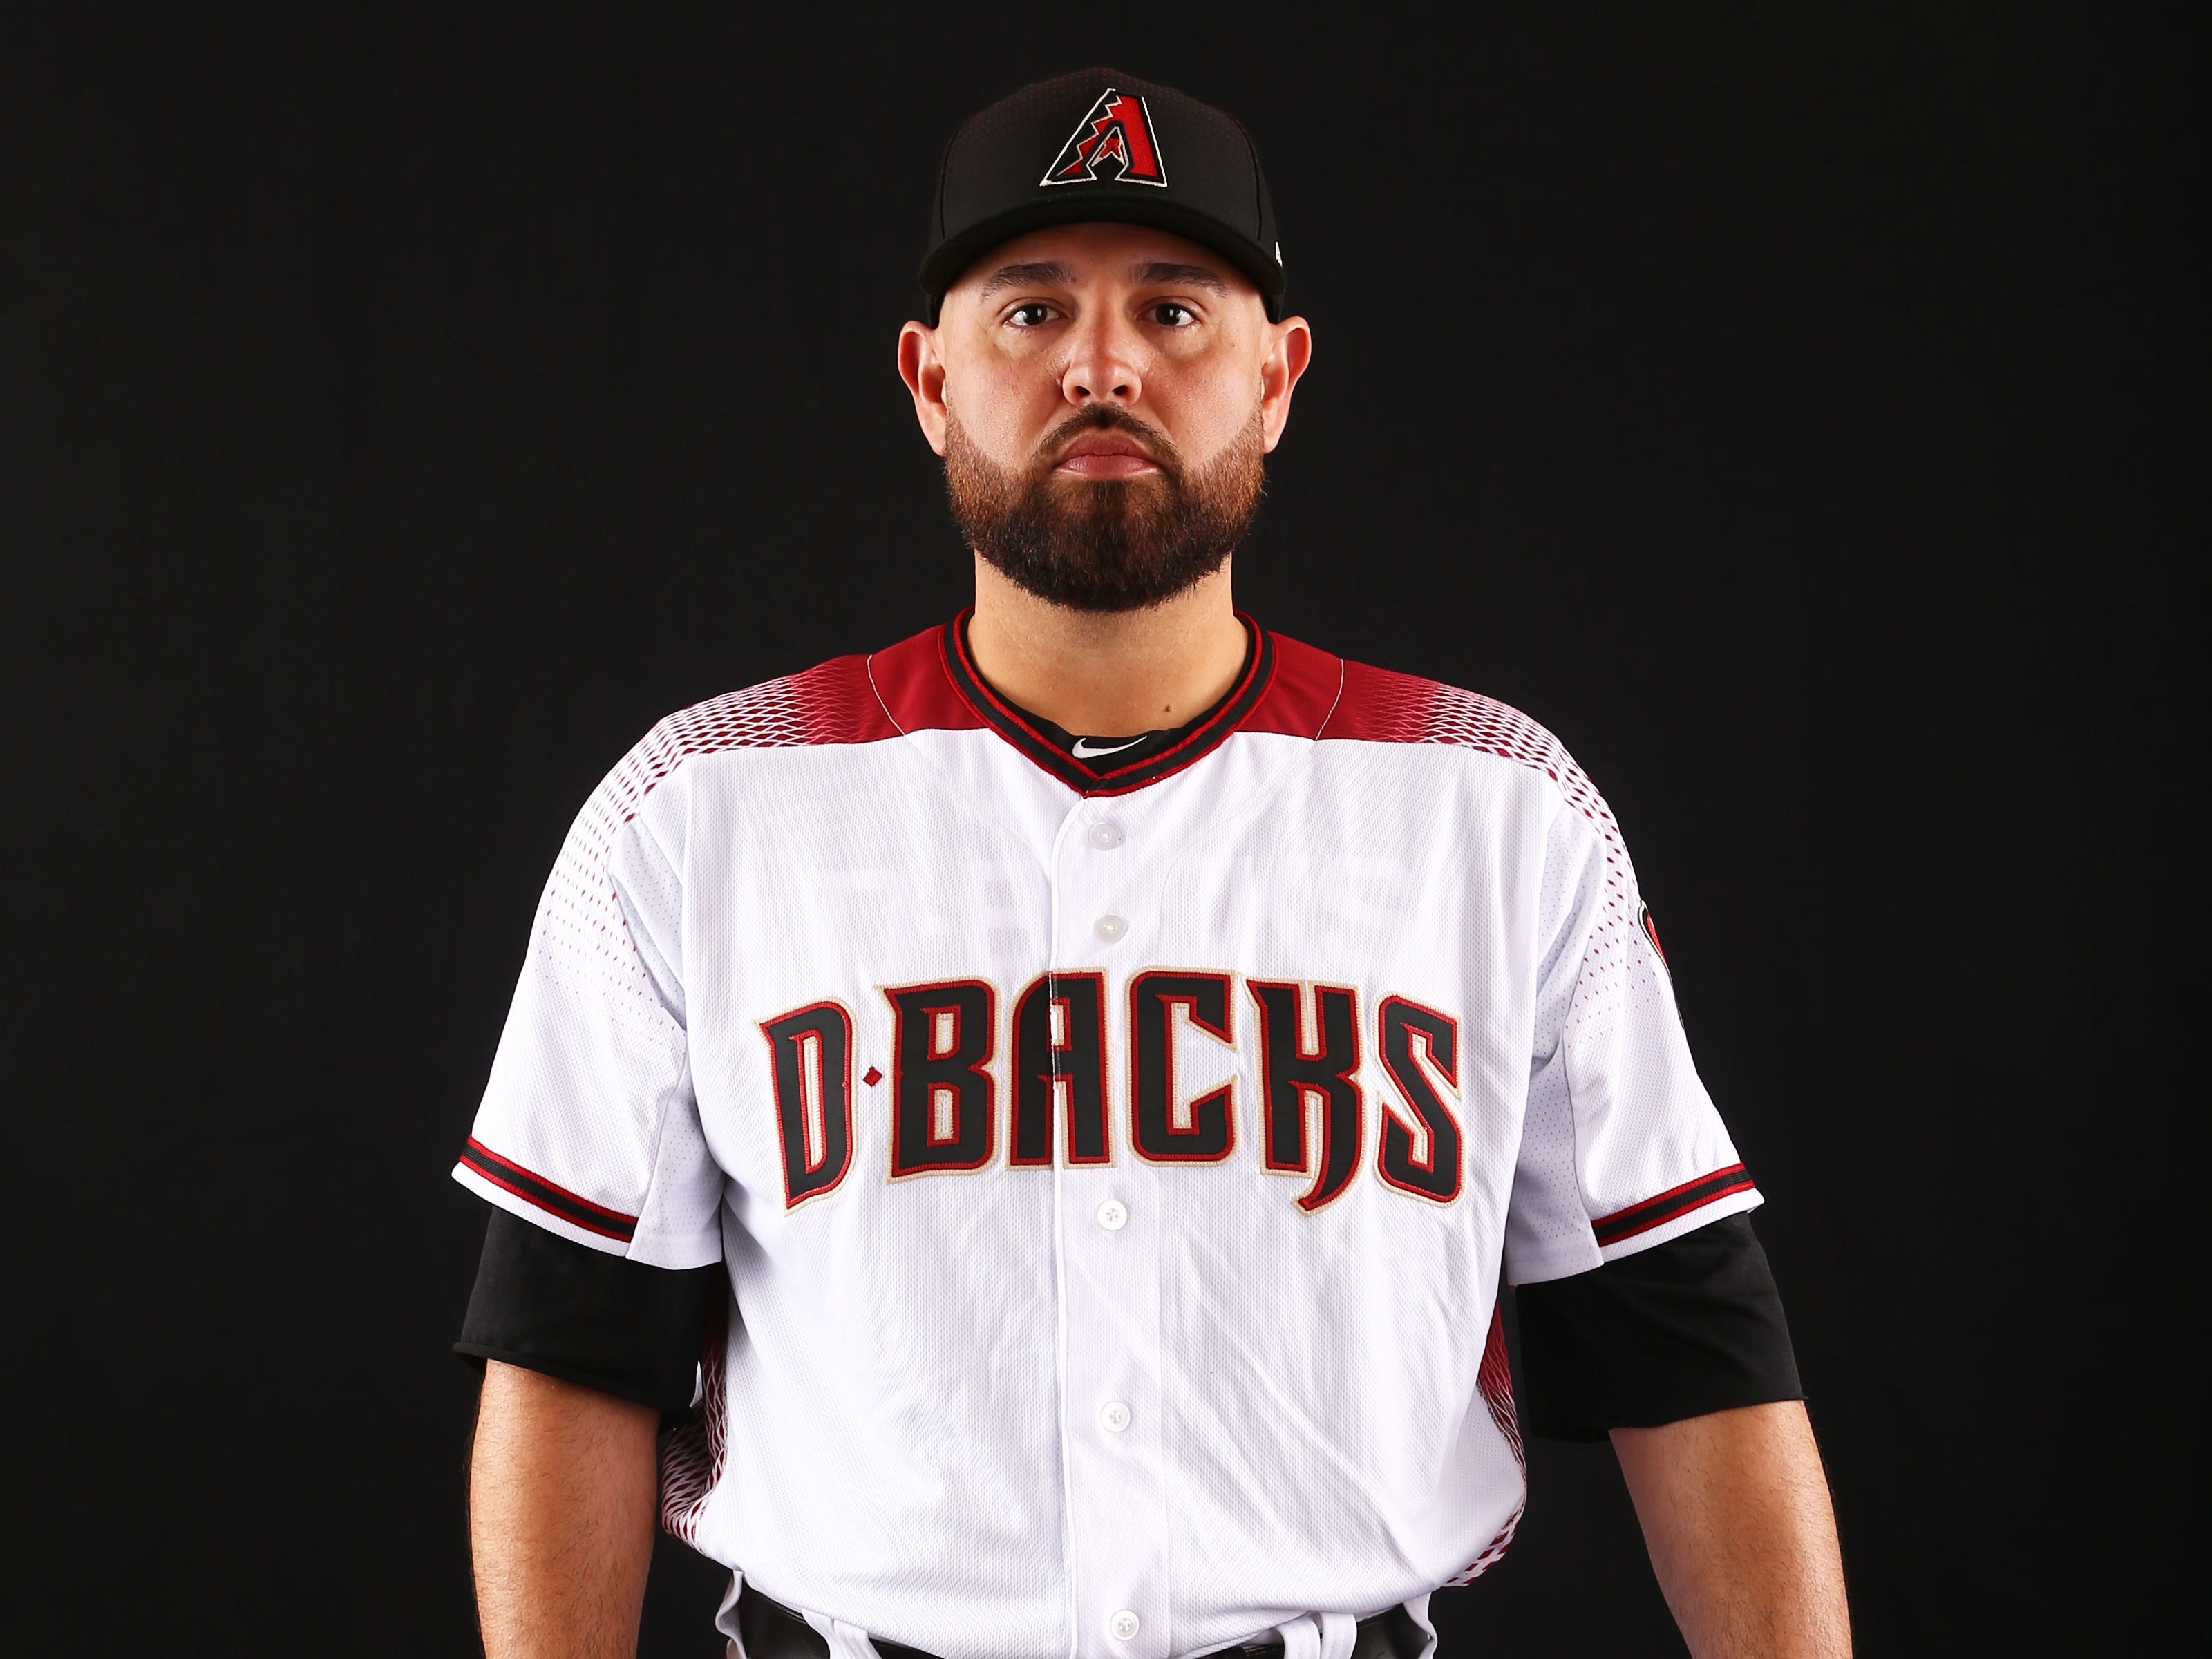 Ricky Nolasco of the Arizona Diamondbacks poses for a photo during the annual Spring Training Photo Day on Feb. 20 at Salt River Fields in Scottsdale, Ariz.